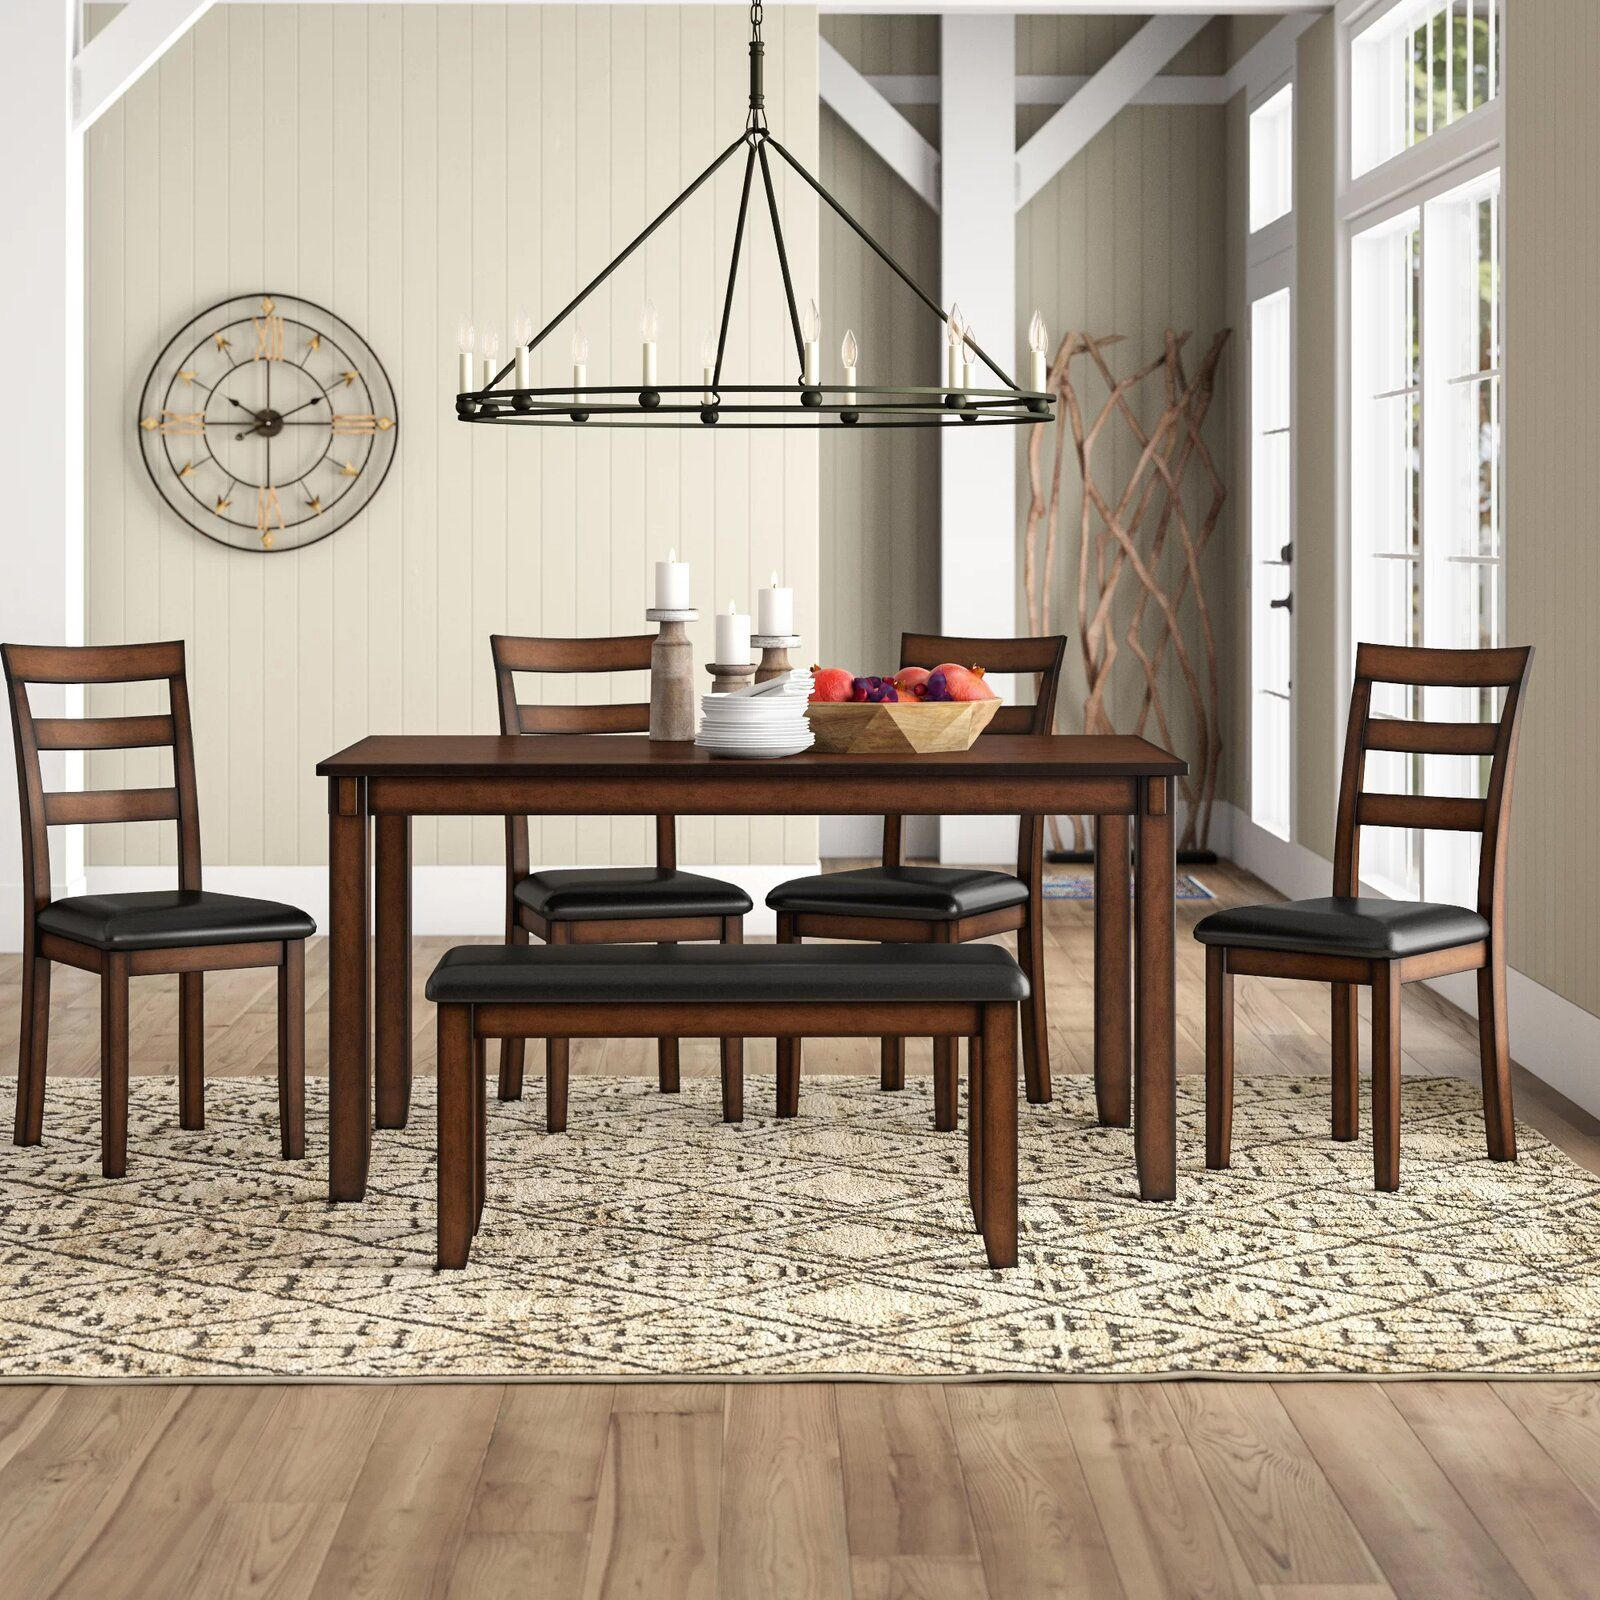 Carolina 6 Piece Dining Set Nook Dining Set Breakfast Nook Dining Set Dining Room Sets